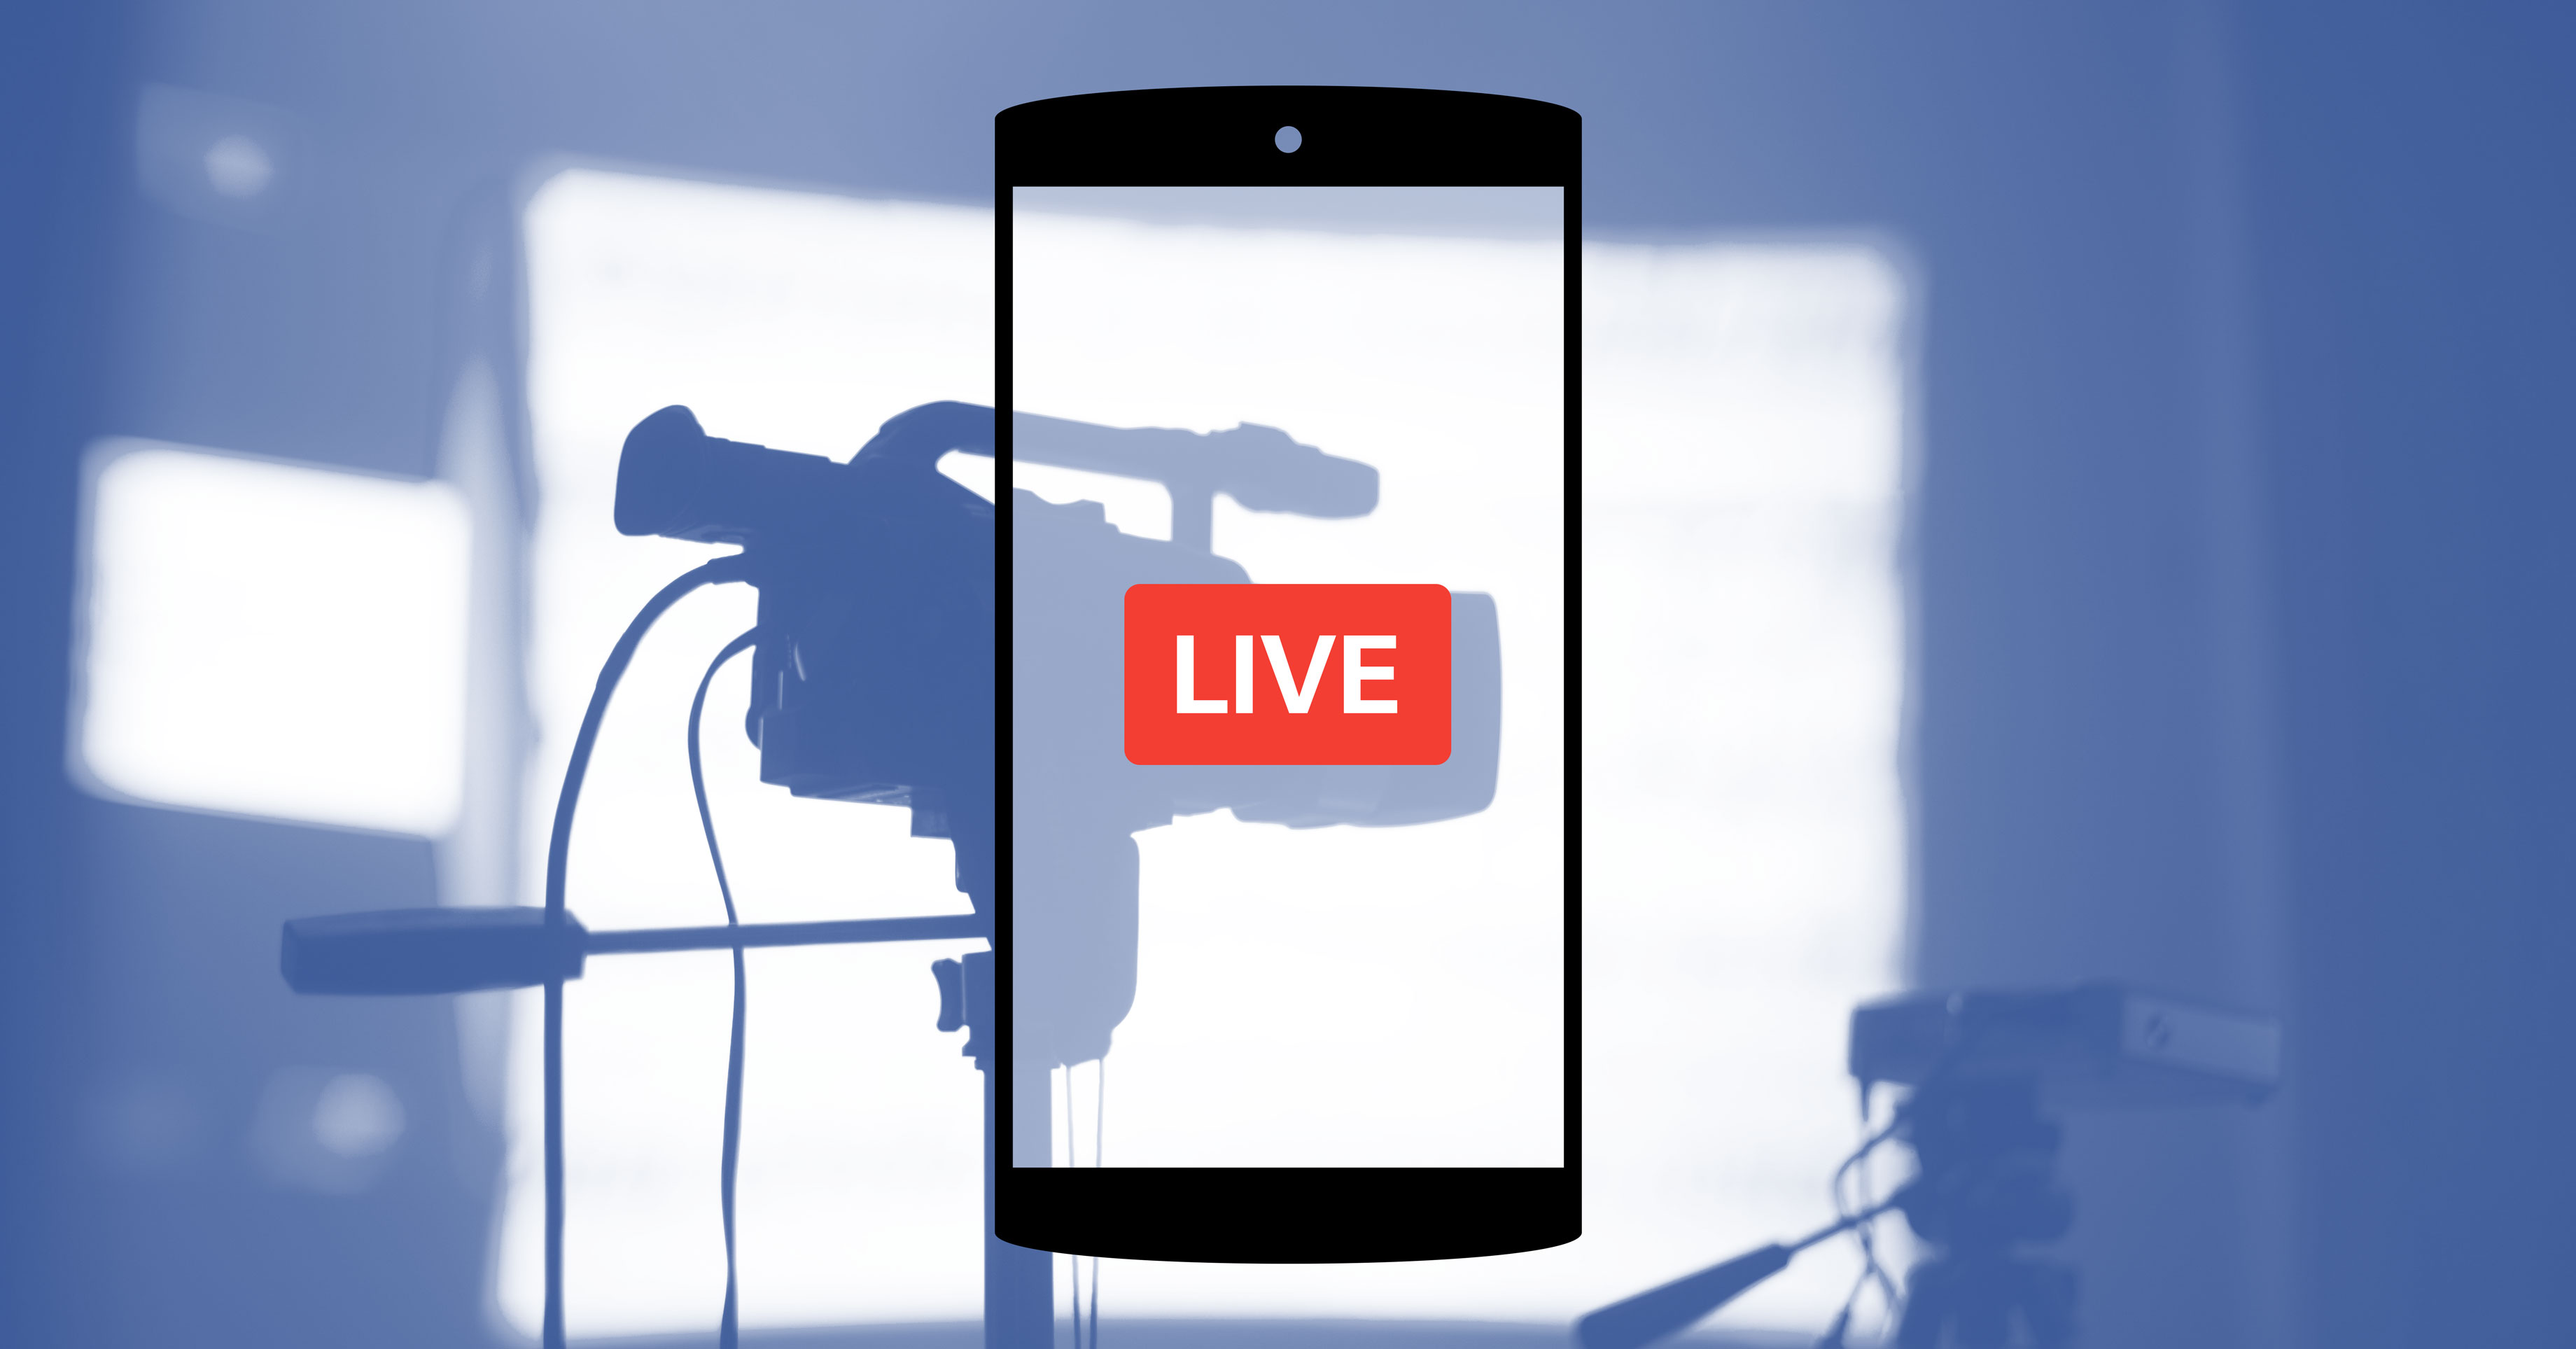 Live xvideo